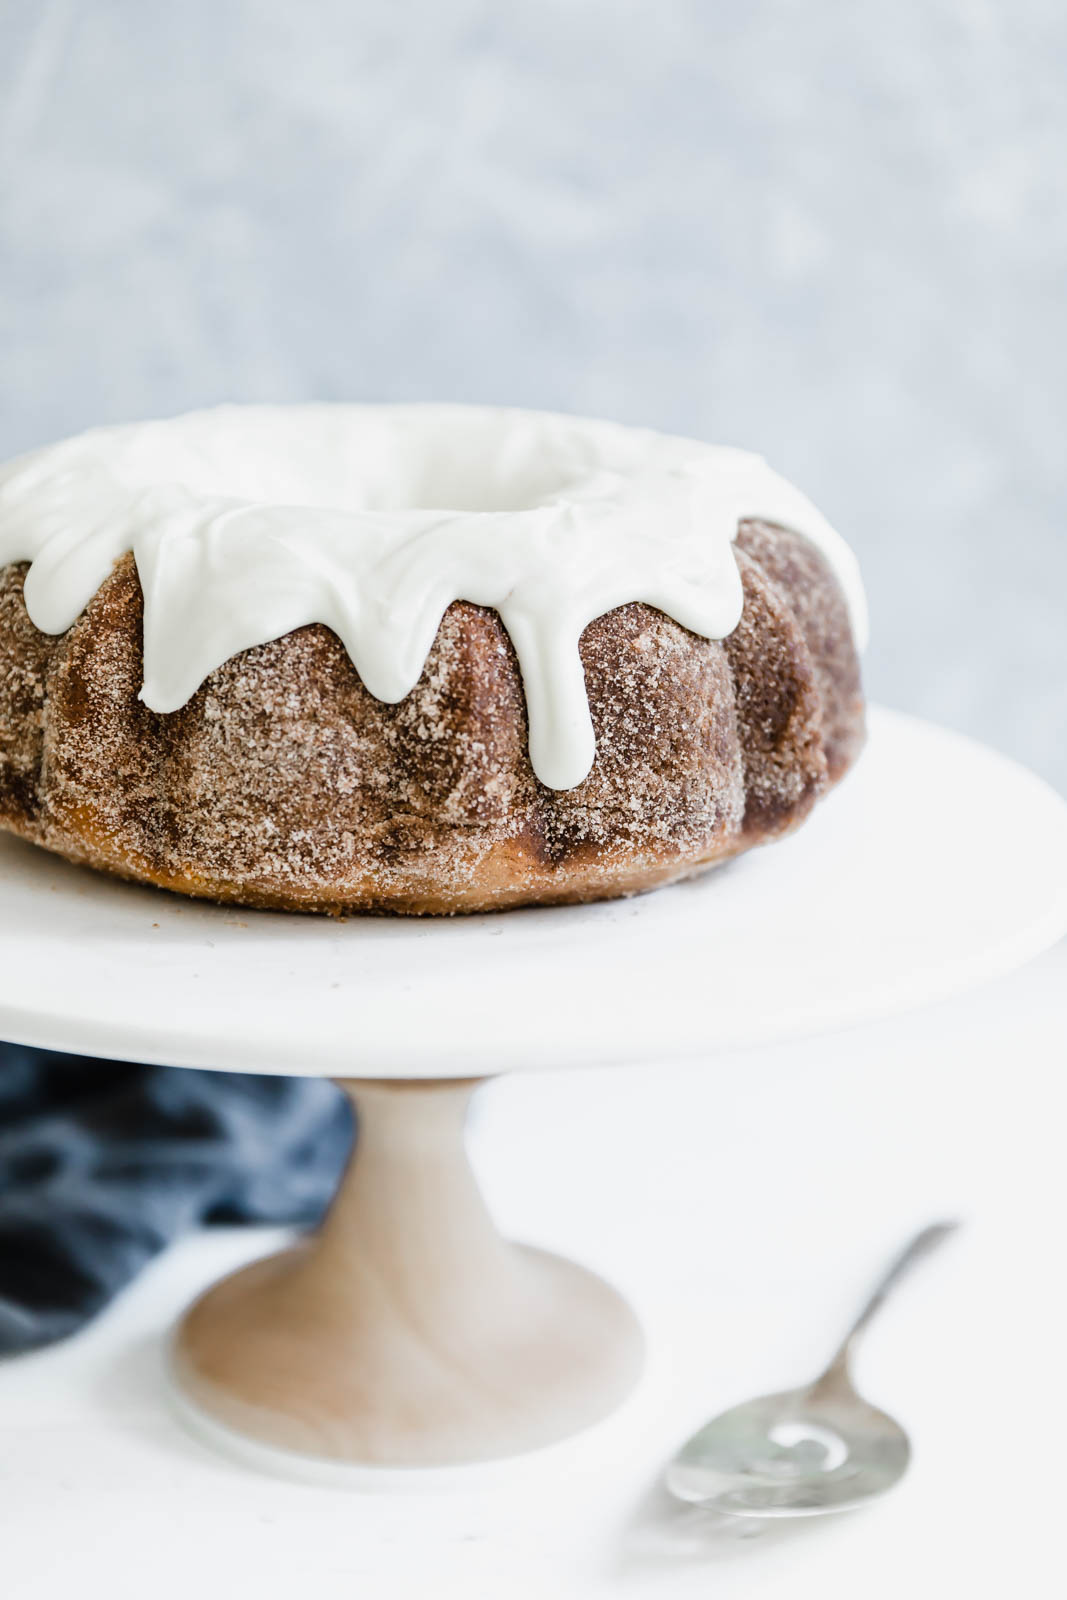 A total crowd-pleaser, this Cinnamon Bun Bundt Cake coated in cinnamon sugar and topped with a thick cream cheese glaze is EVERYTHING.